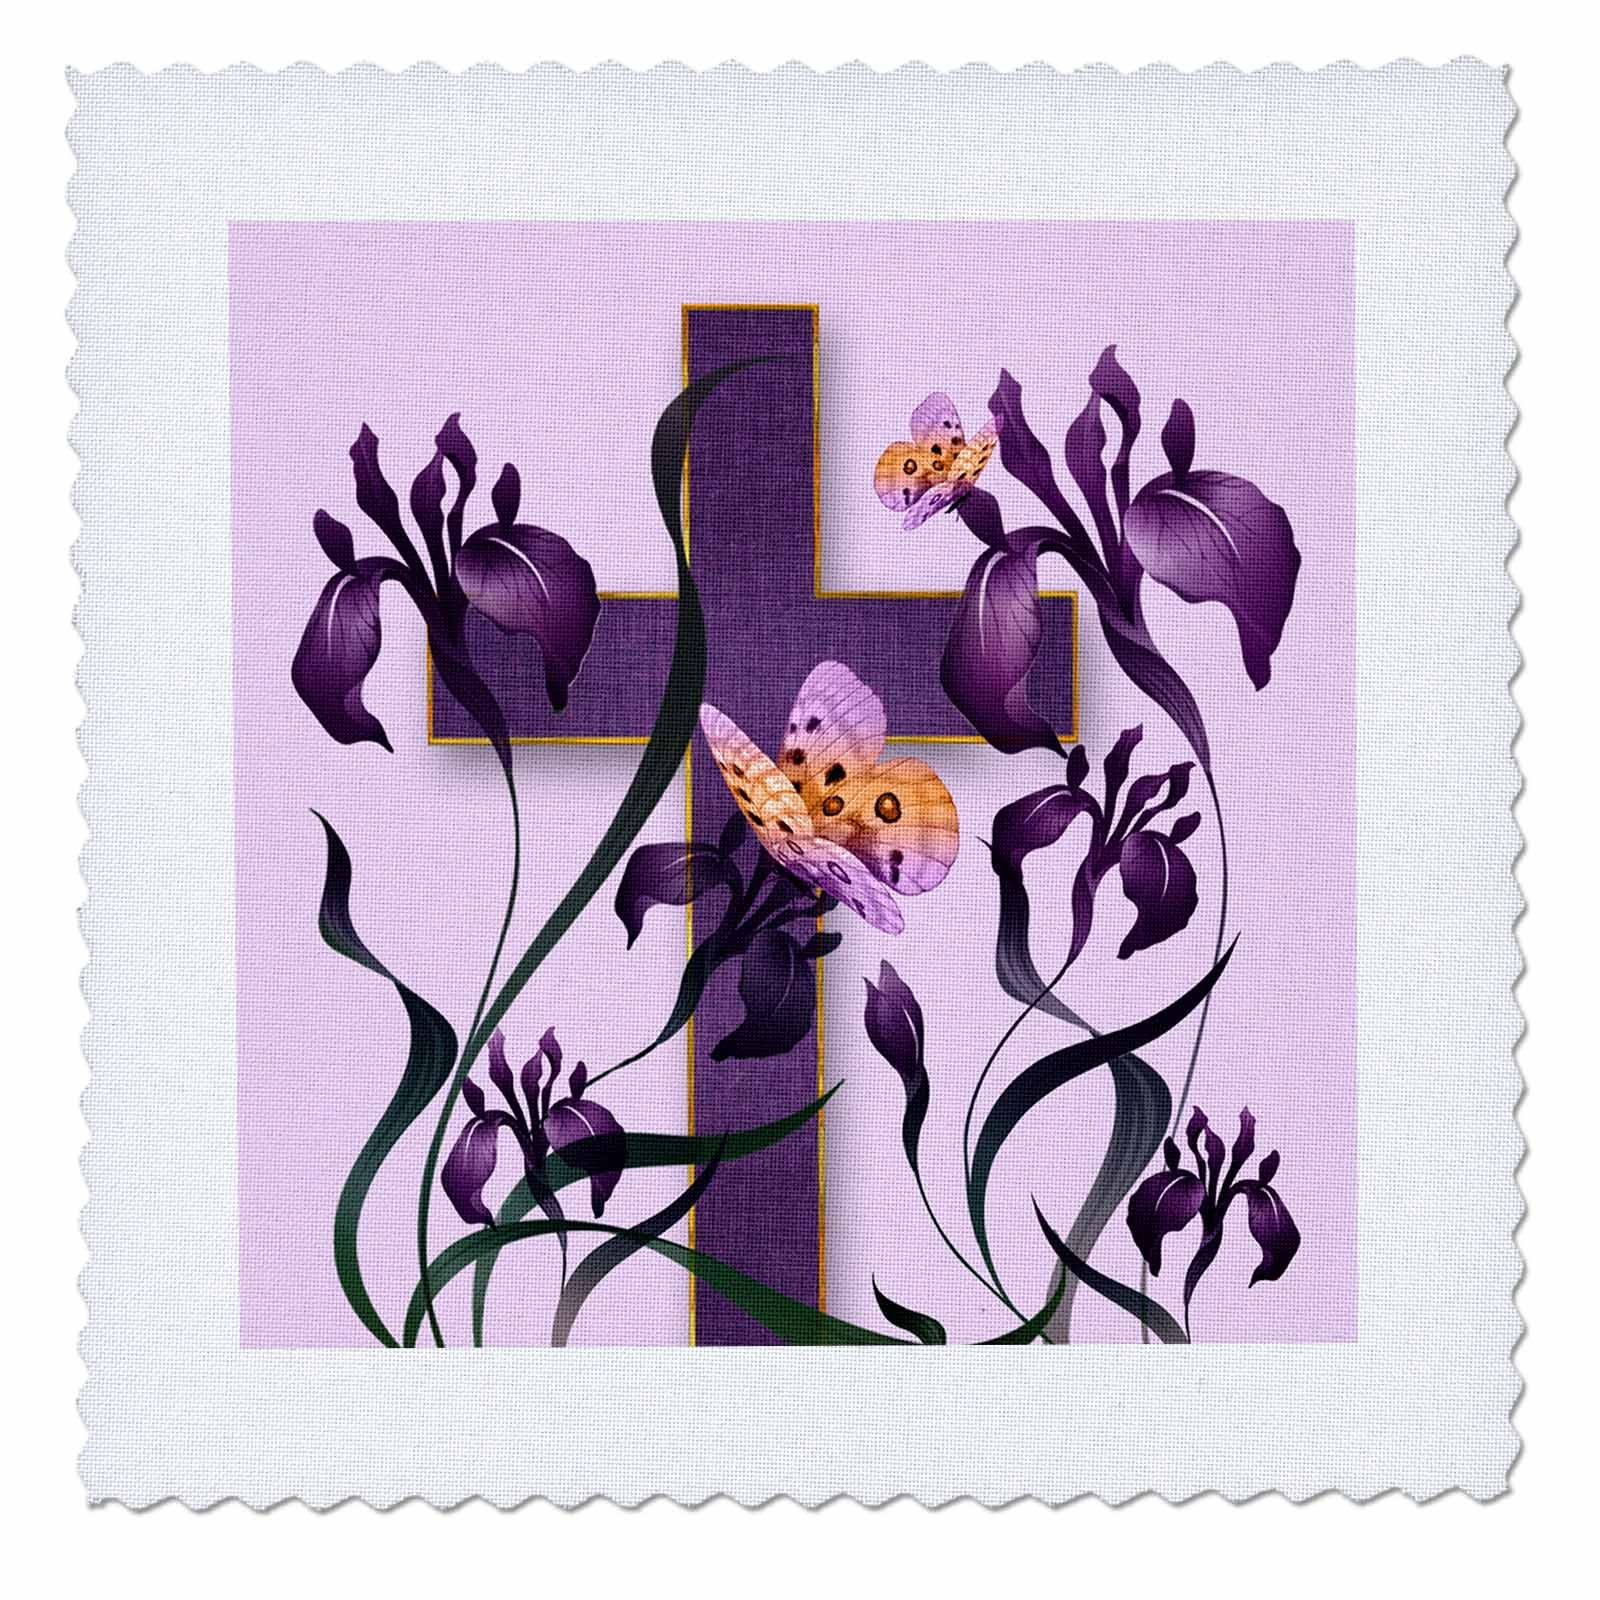 3dRose Doreen Erhardt Inspirational - Purple Iris Flowers with a Christian Cross and Butterflies - 22x22 inch quilt square (qs_266786_9)